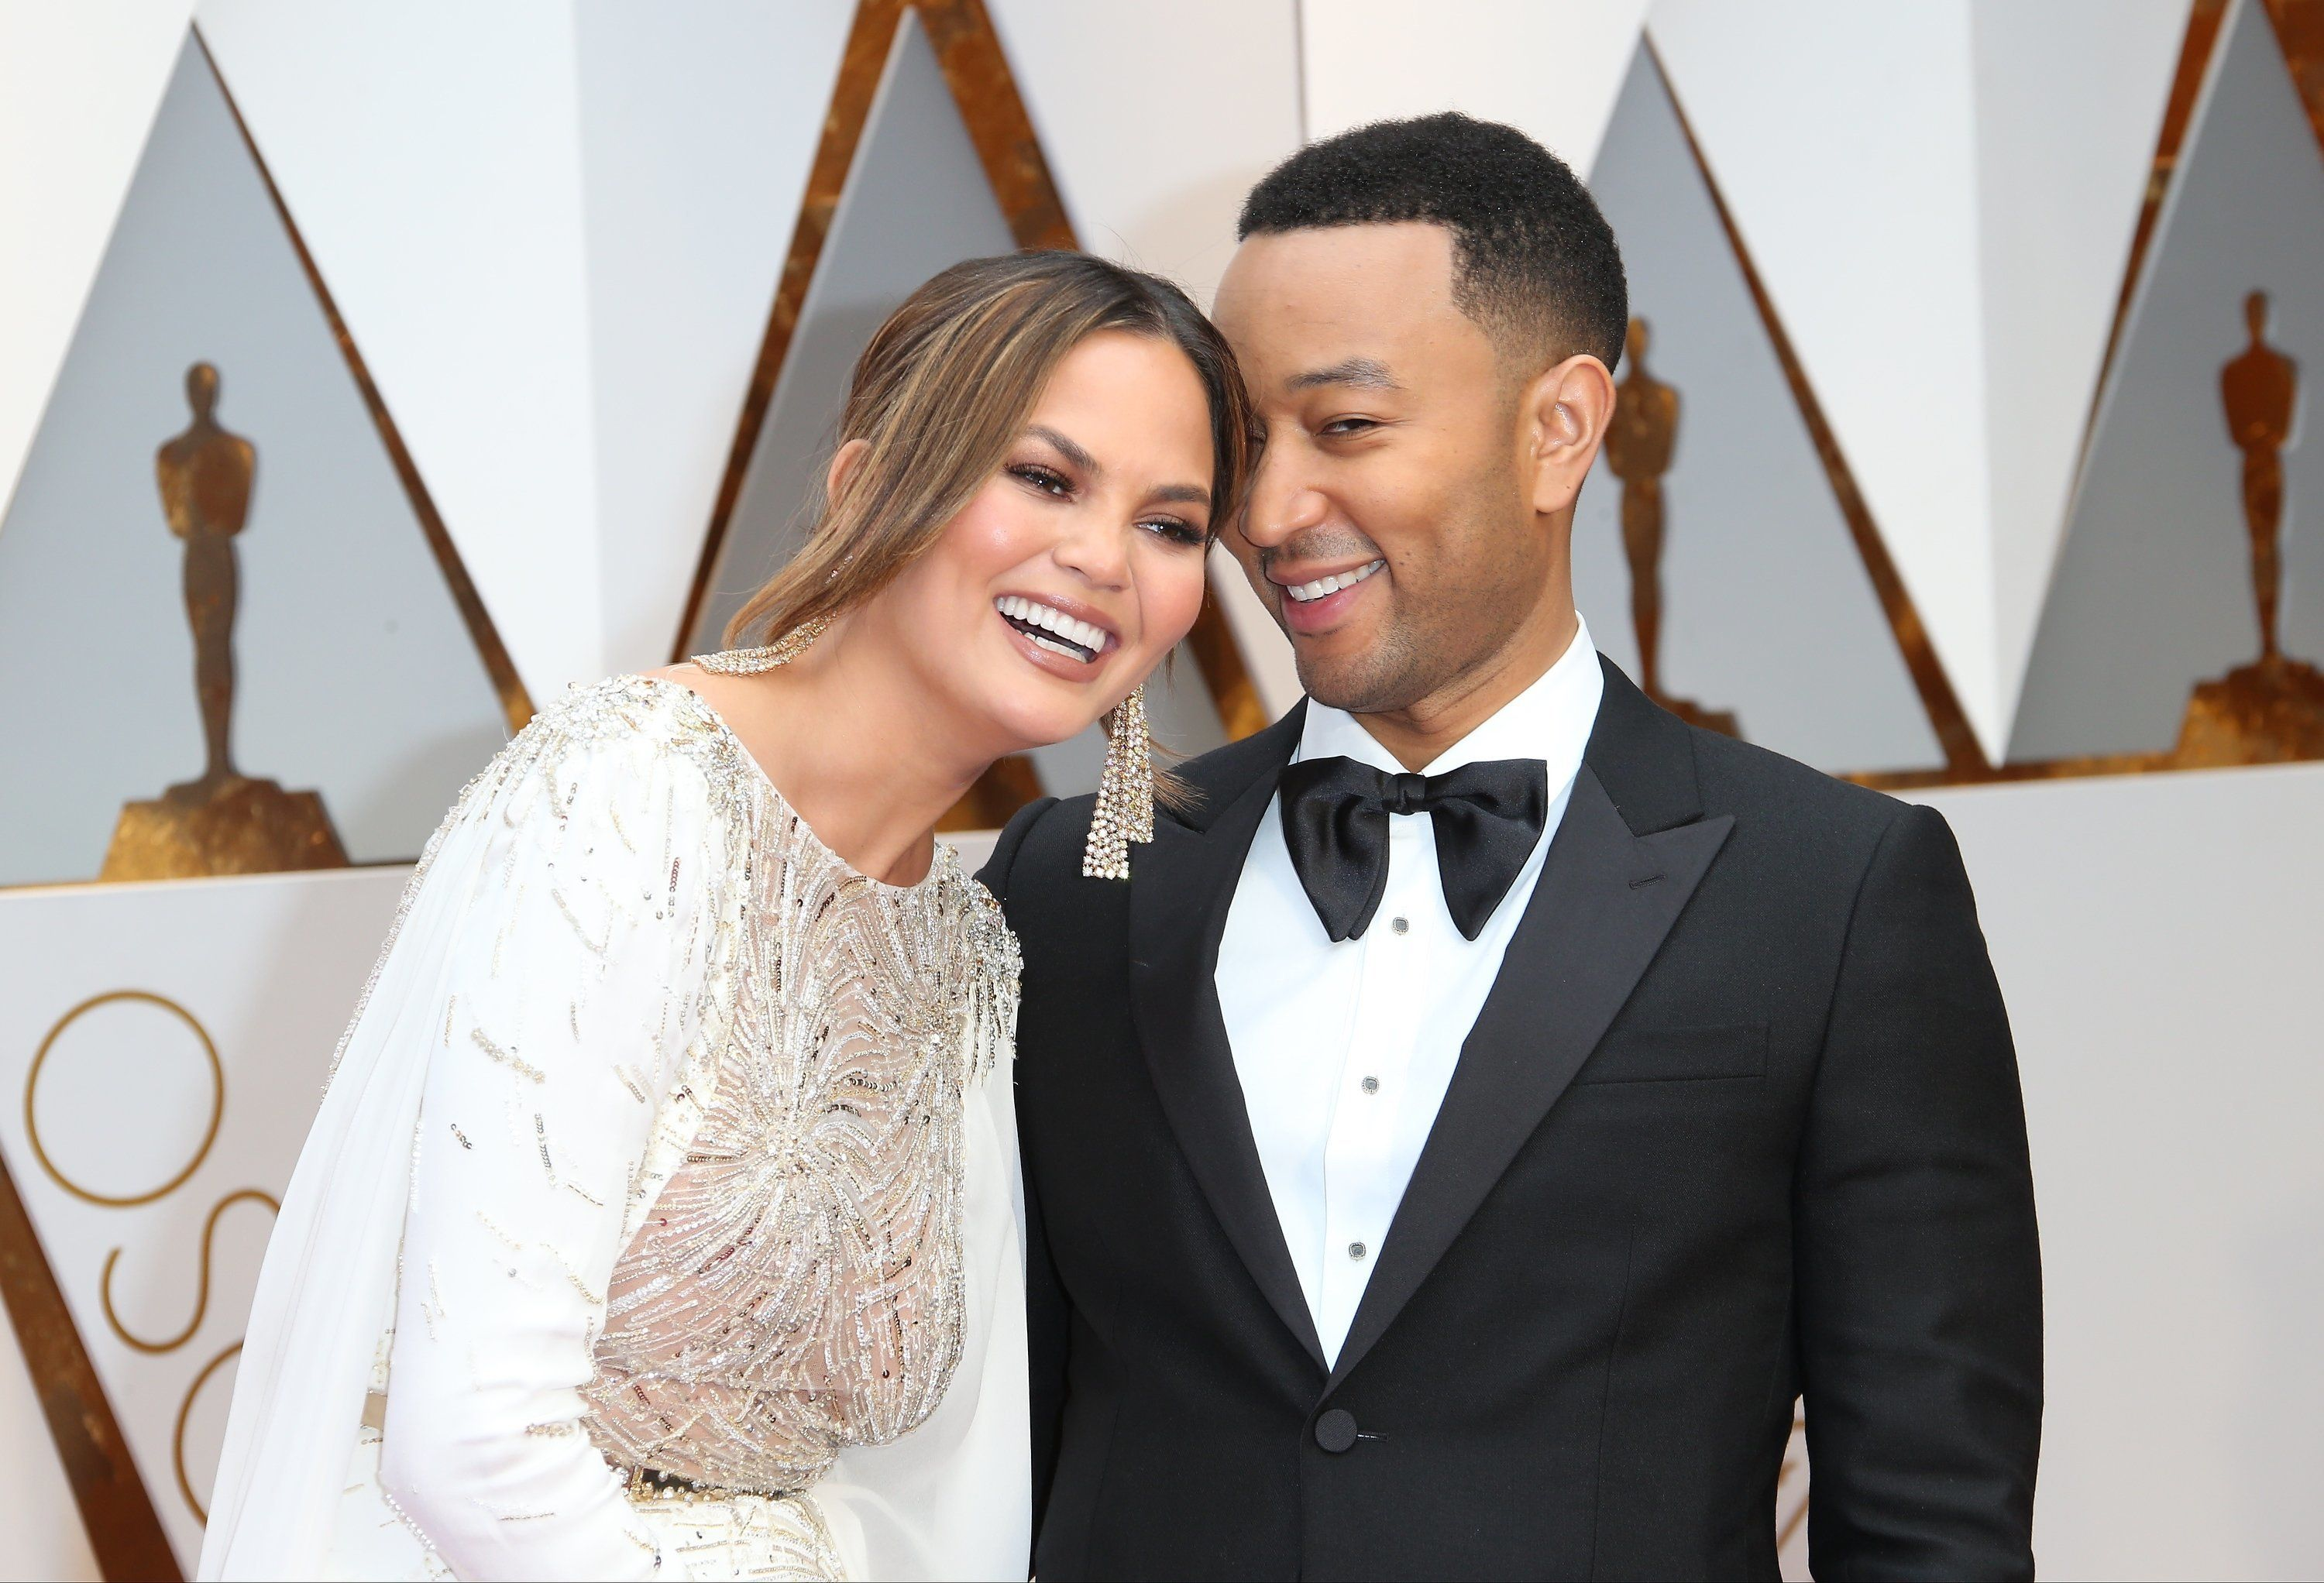 HOLLYWOOD, CA - FEBRUARY 26: Model Chrissy Teigen (L) and musician John Legend arrive at the 89th Annual Academy Awards at Hollywood & Highland Center on February 26, 2017 in Hollywood, California. (Photo by Dan MacMedan/Getty Images)